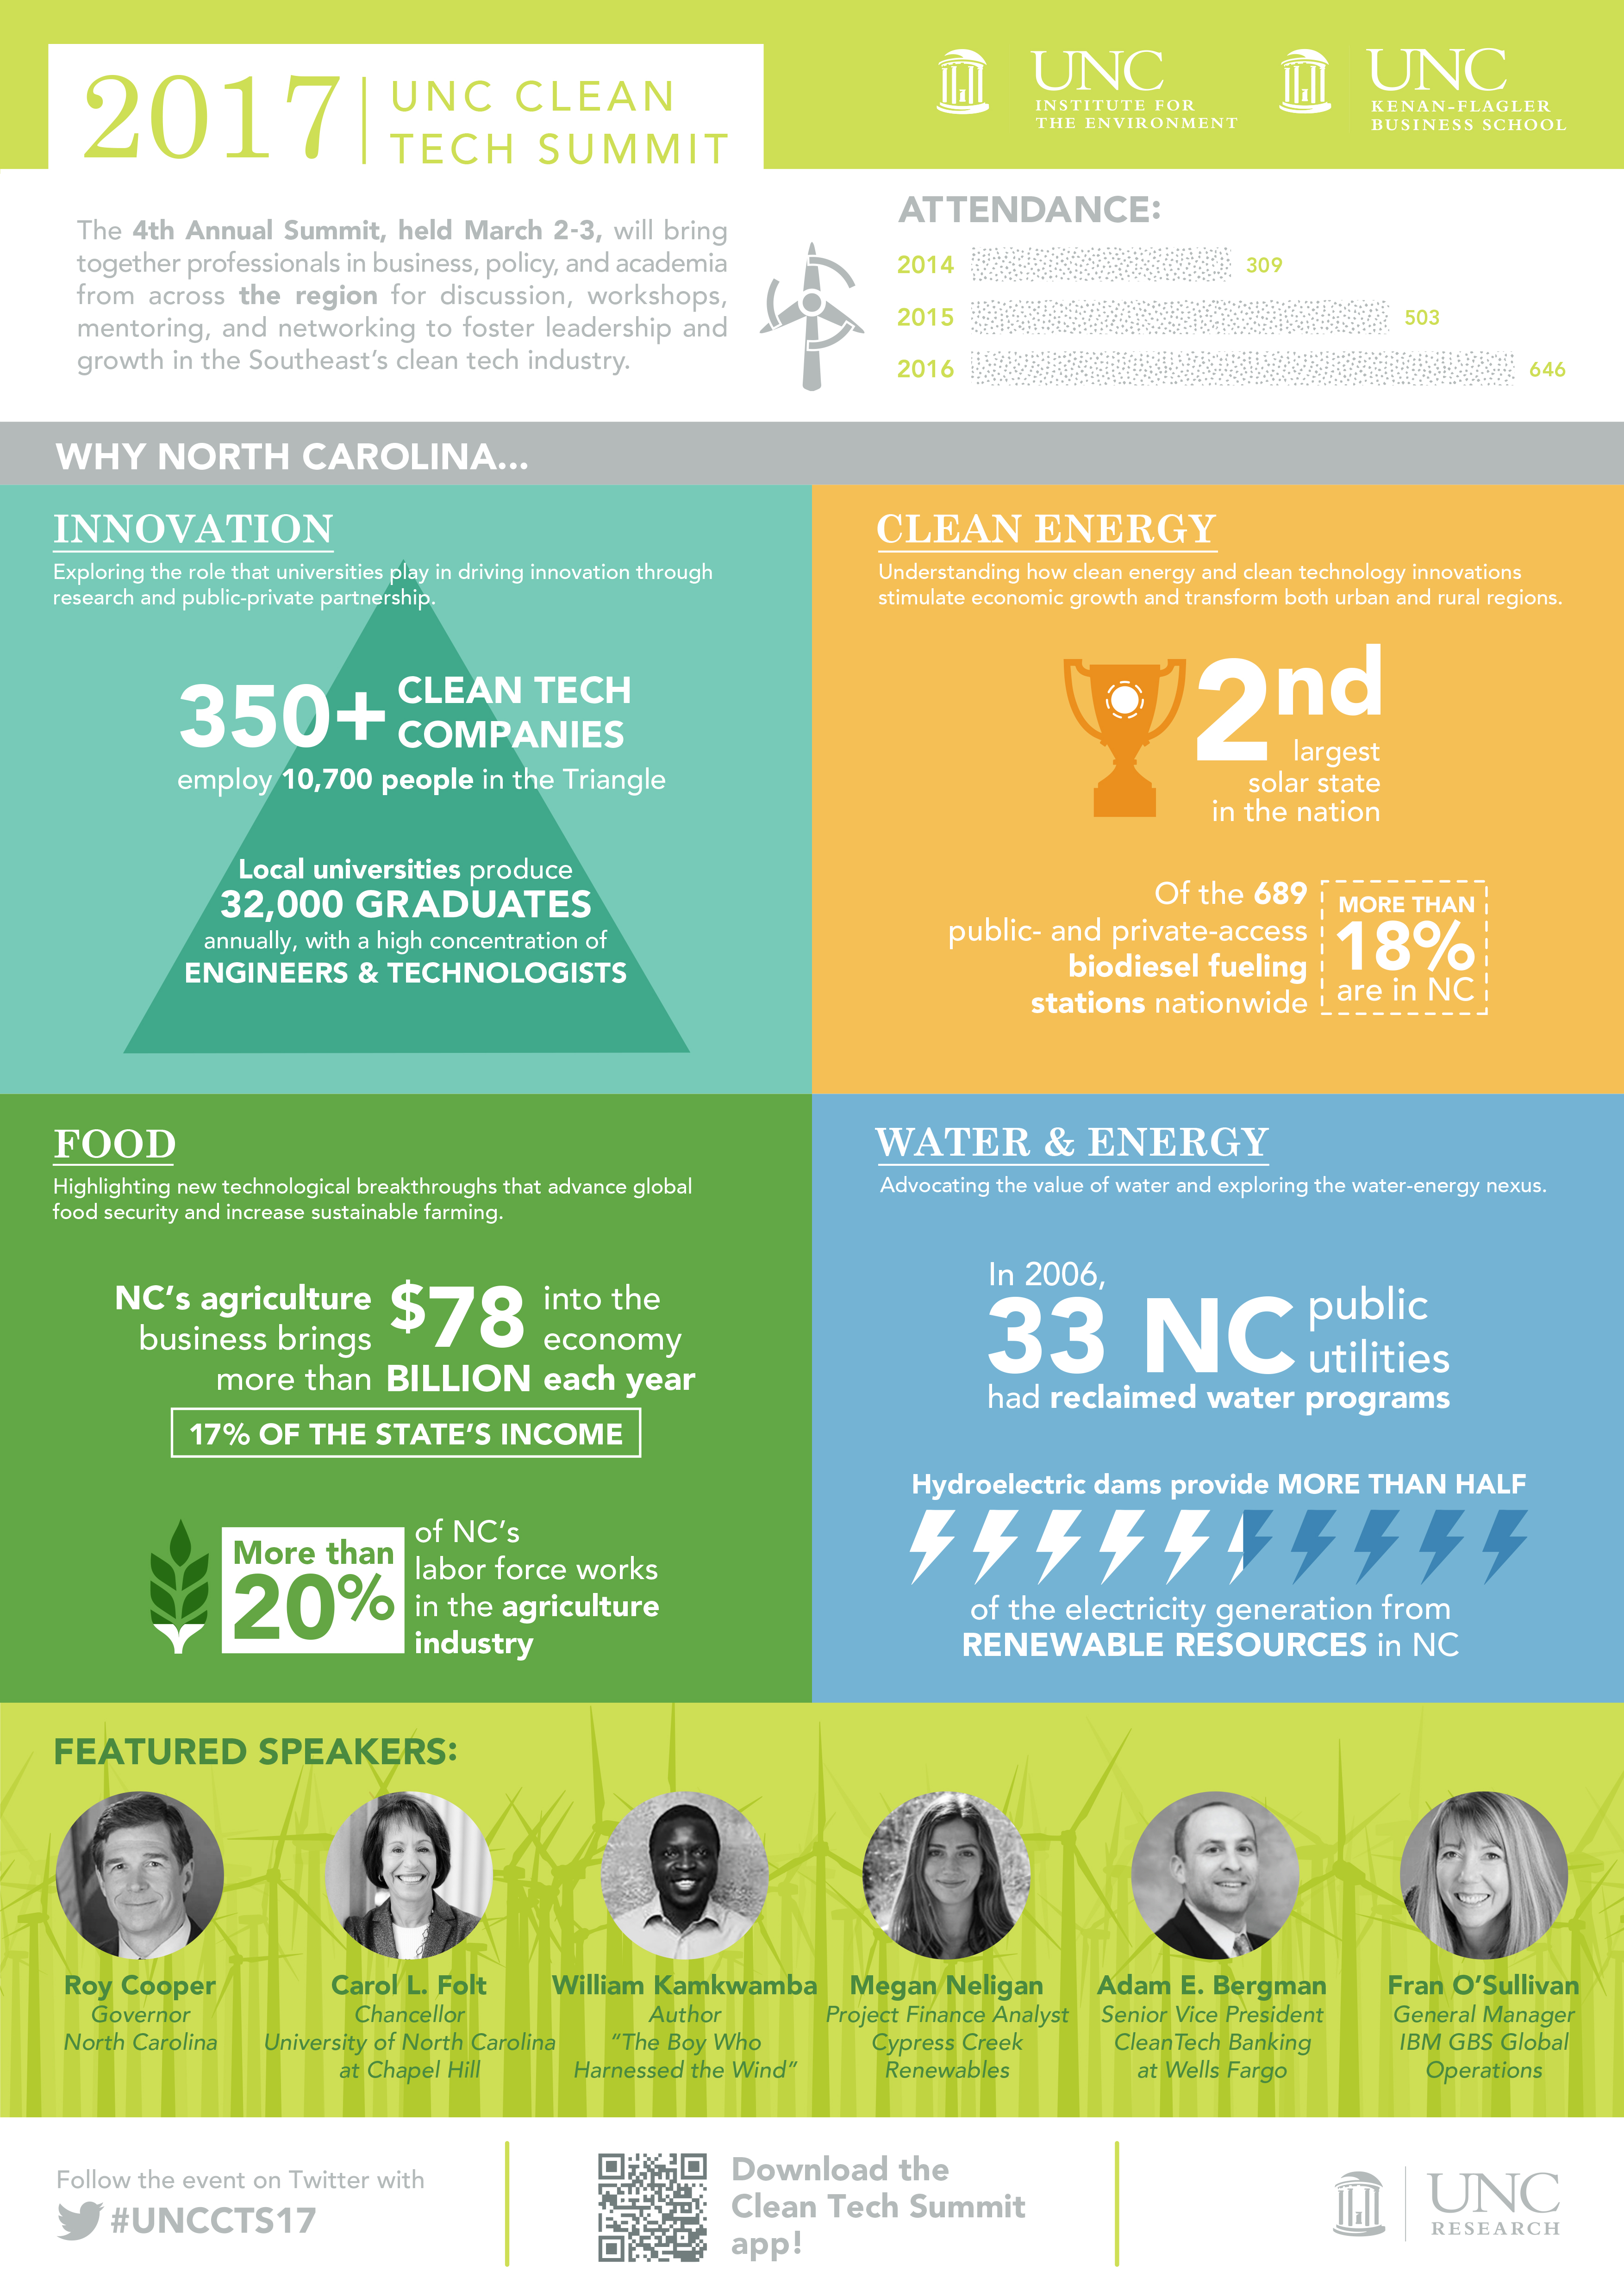 "2017 UNC Clean Tech Summit infographic: The 4th annual summit, held March 2-3, will bring together professionals in business, policy, and academia from across the region for discussion, workshops, mentoring, and networking for foster leadership and growth in the Southeast's clean tech industry. Attendance: 2014- 309 attendees; 2015- 503 attendees; and 2016- 646 attendees. Why North Carolina?: Innovation- Exploring the role that universities play in driving innovation through research and public-private partnership. 350 plus clean tech companies employ 10,700 people in the Triangle. Local universities produce 32,000 graduates annually, with a high concentration of engineers and technologists. Clean Energy: Understanding how clean energy and clean technology innovations stimulate economic growth and transform both urban and rural regions. 2nd largest solar state in the nation. Of the 689 public- and private-access biodiesel funding stations nationwide, more than 18% are in North Carolina. Food: Highlighting the new technological breakthroughs that advance global food security and increase sustainable farming. North Carolina's agriculture business brings more than $78 billion into the economy each year; 17% of the state's income. More than 20% of the North Carolina's labor force works in the agriculture industry. Water and Energy: Advocating the value of water and exploring the water-energy nexus. In 2006, 33 North Carolina public utilities had reclaimed water programs. Hydroelectric dams provide more than half of the electricity generation from renewable resources in North Carolina. Featured speakers: Roy Cooper, Governor of North Carolina. Carol L. Folt, Chancellor of University of North Carolina at Chapel Hill. William Kamkwamba, Author of ""The Boy Who Harnessed the Wind."" Megan Neligan, Project Finance Analyst at Cypress Creek Renewables. Adam E. Bergman, Senior Vice President at CleanTech Banking at Wells Fargo. Fran O'Sullivan, General Manager at IBM GBS Global Operations. Follow the event on Twitter with #UNCCTS16. Download the Clean Tech Summit app."